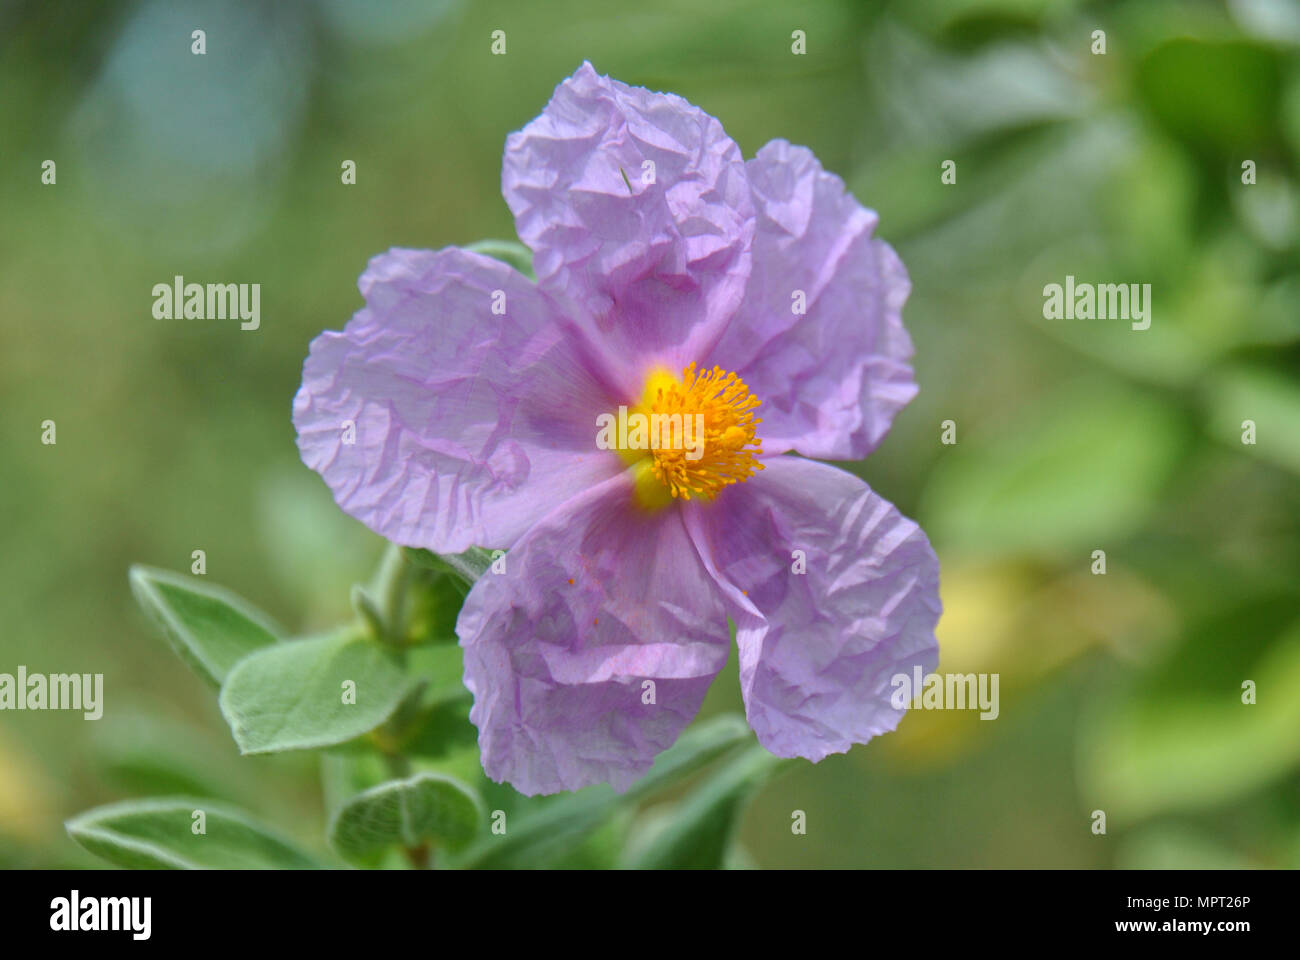 Purple Flower With Petals Looking Like Crumpled Paper With Green